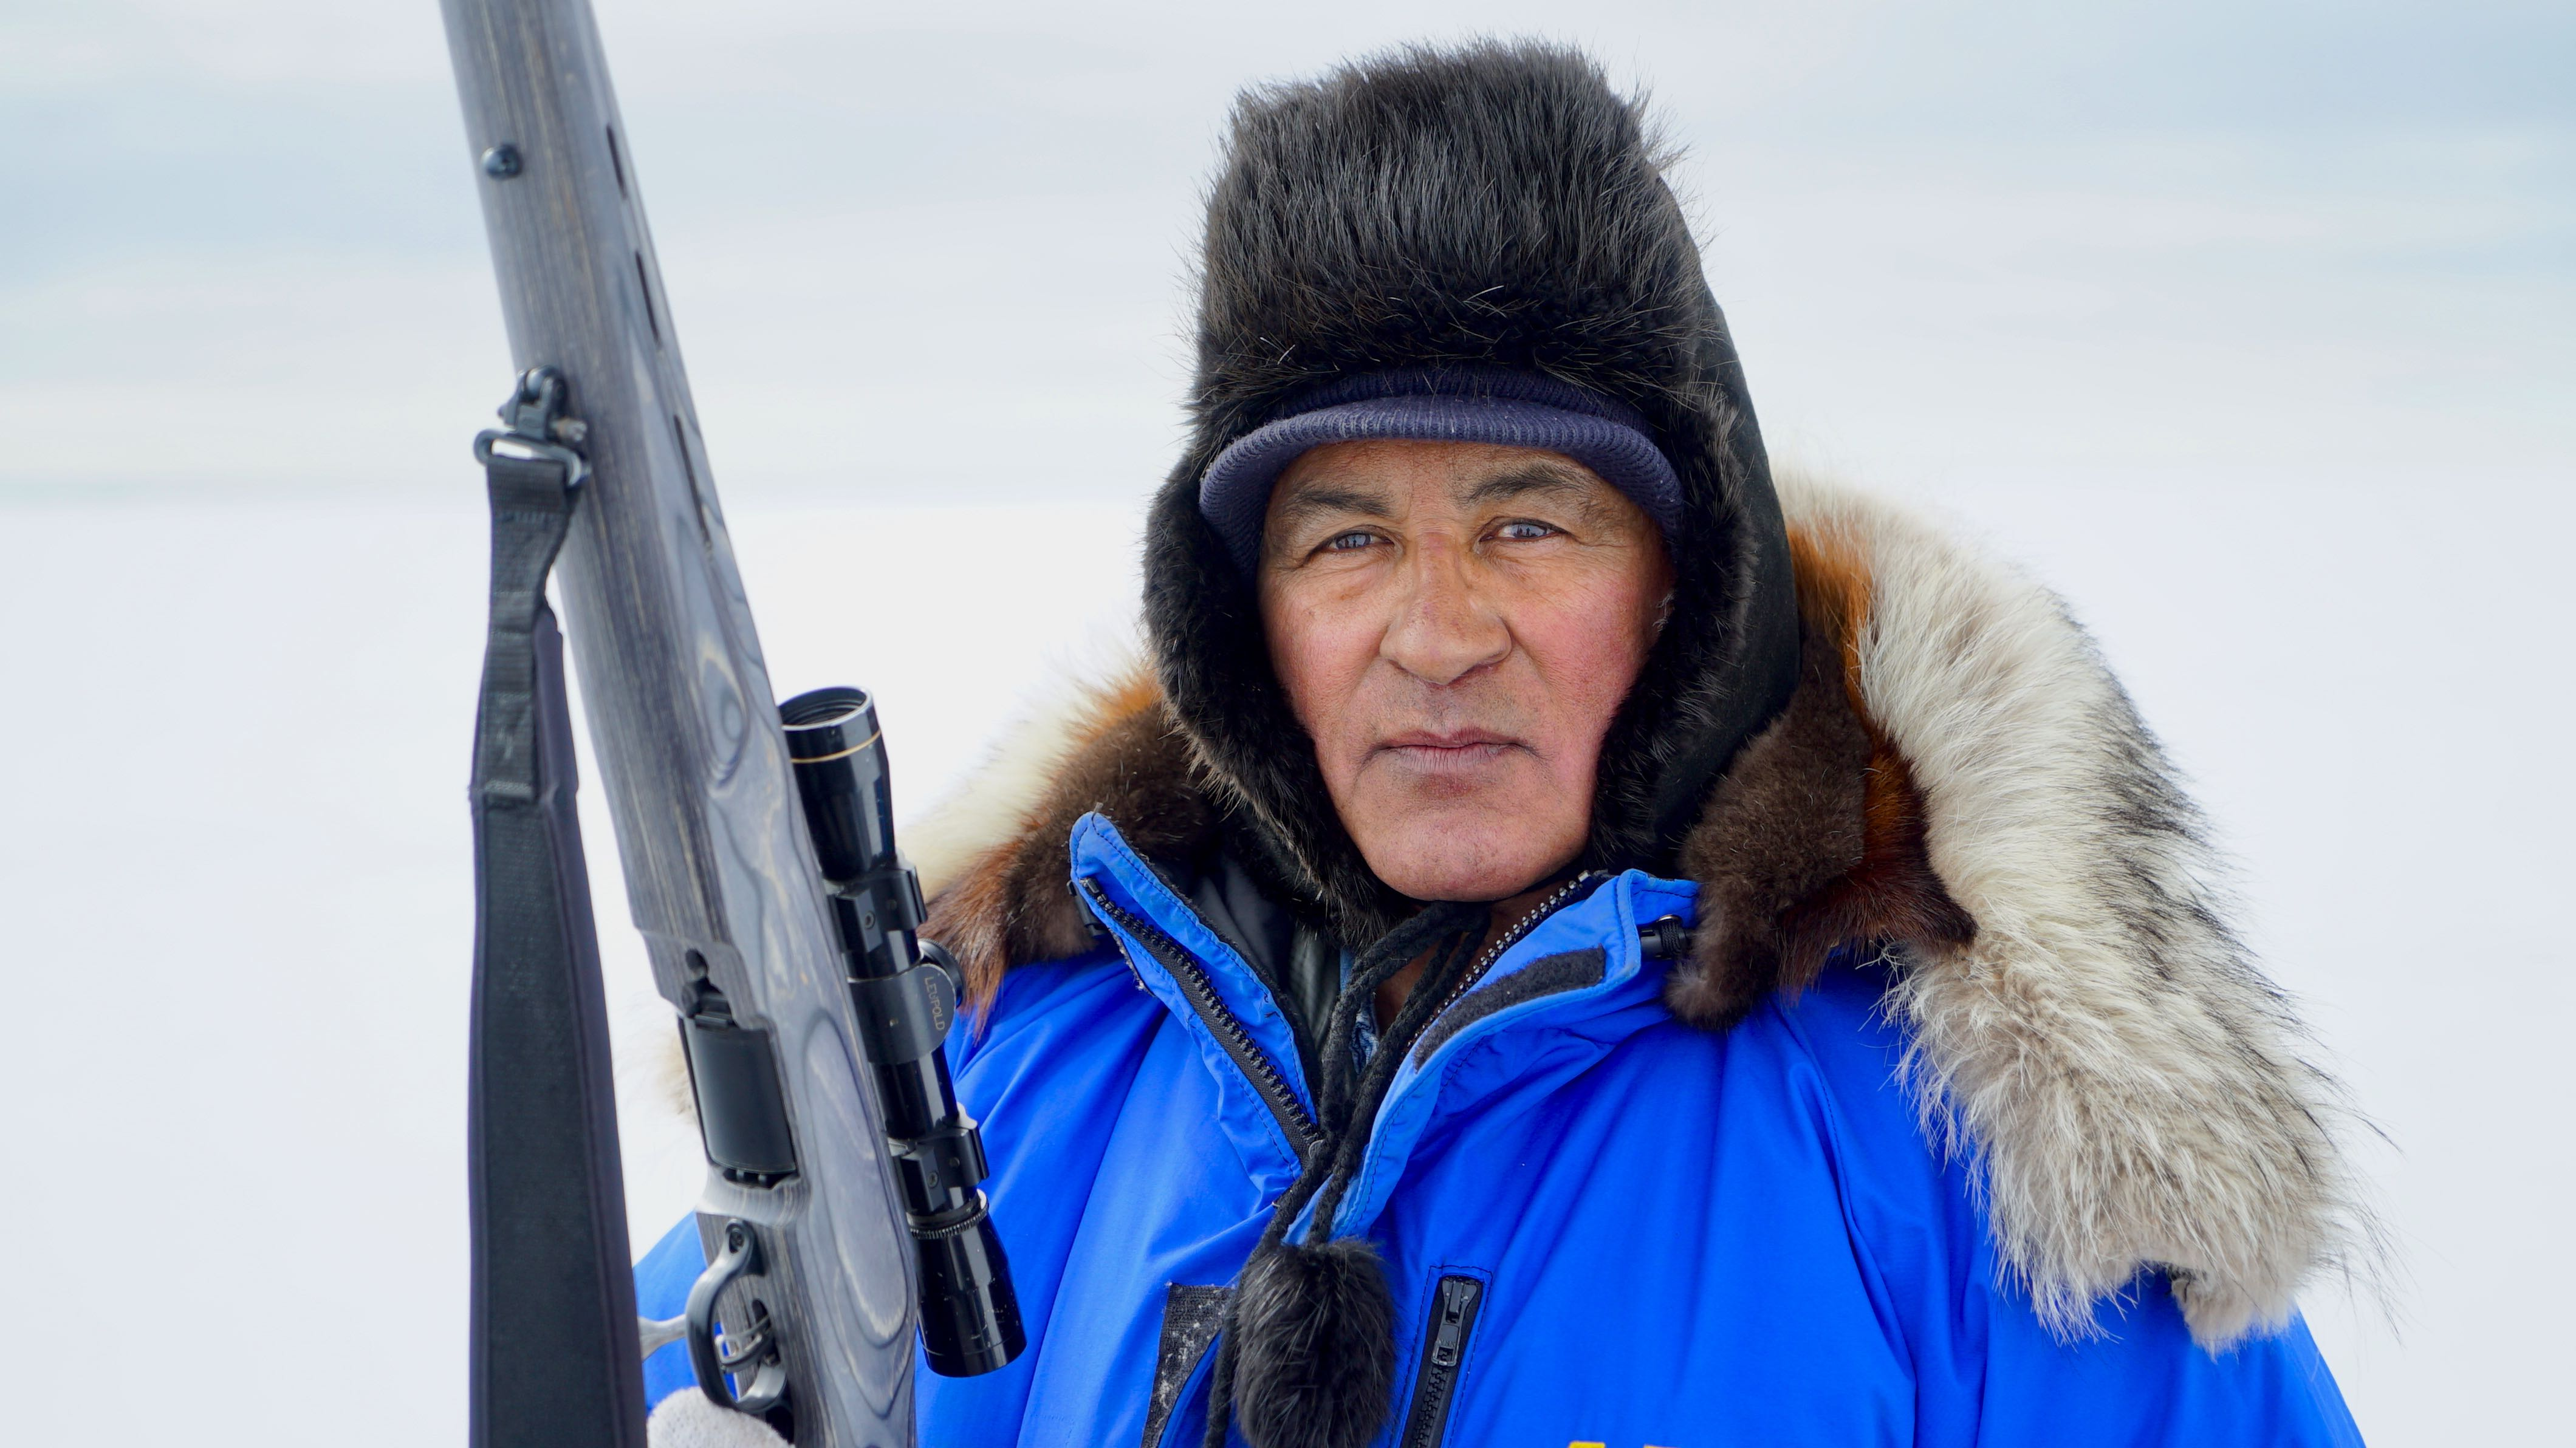 A man in winter gear holds a rifle.